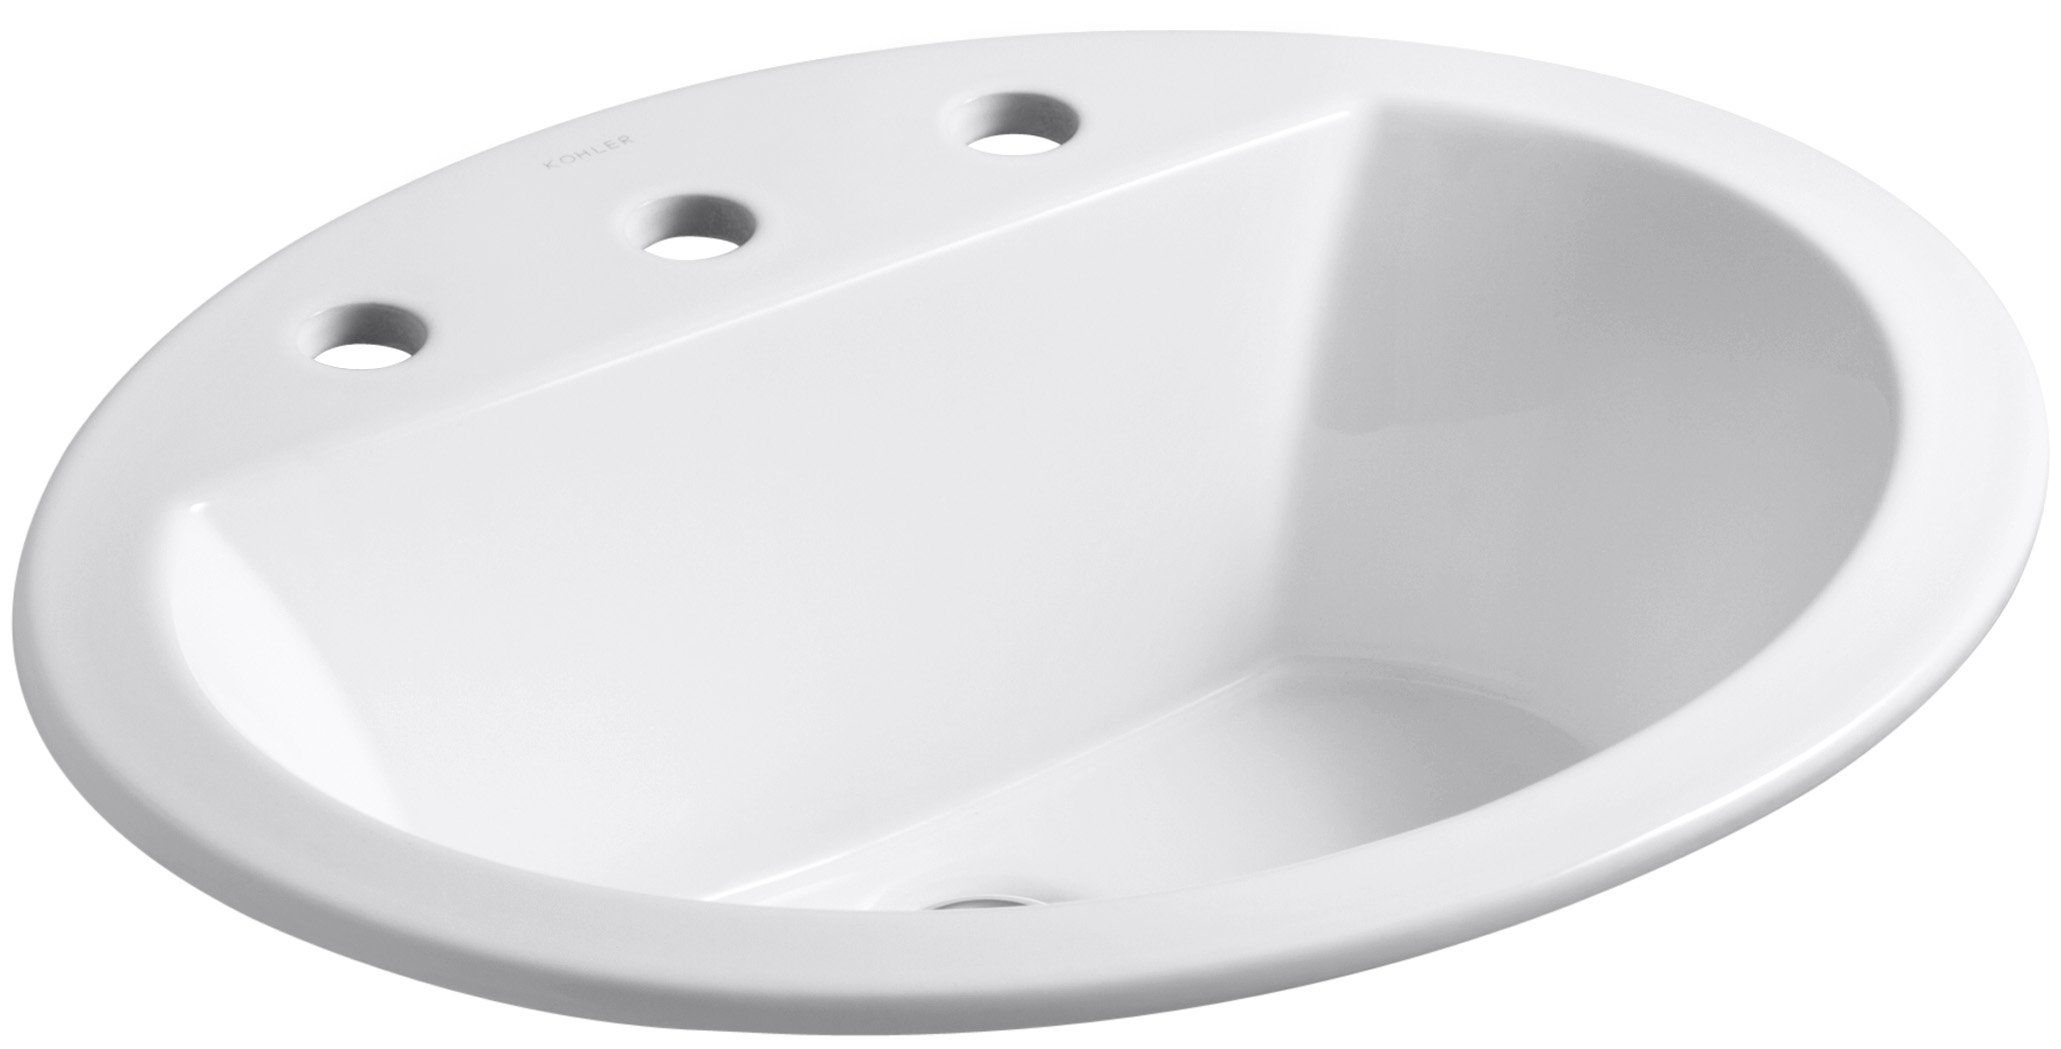 KOHLER K-2699-8-0 Bryant Oval Self-Rimming Bathroom Sink with 8-Inch Centers, White